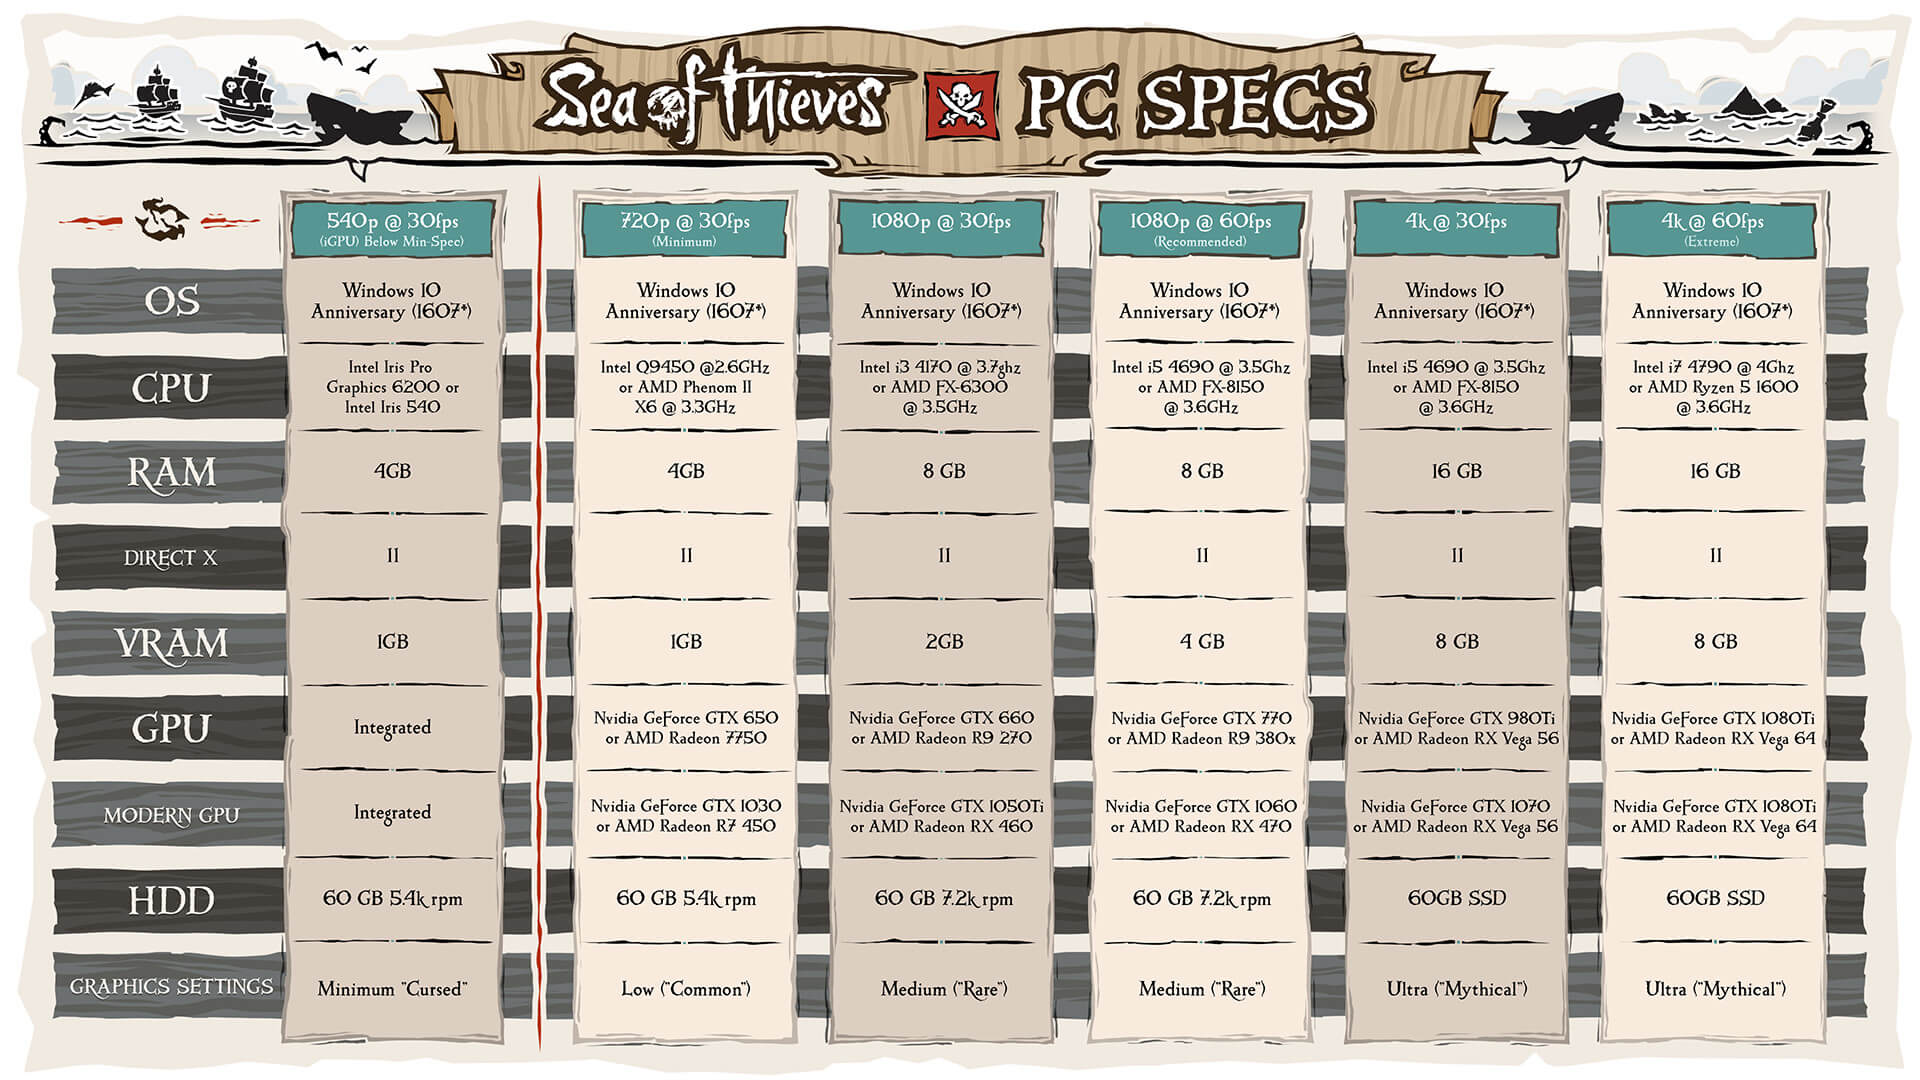 Configurações de Sea of Thieves para PC